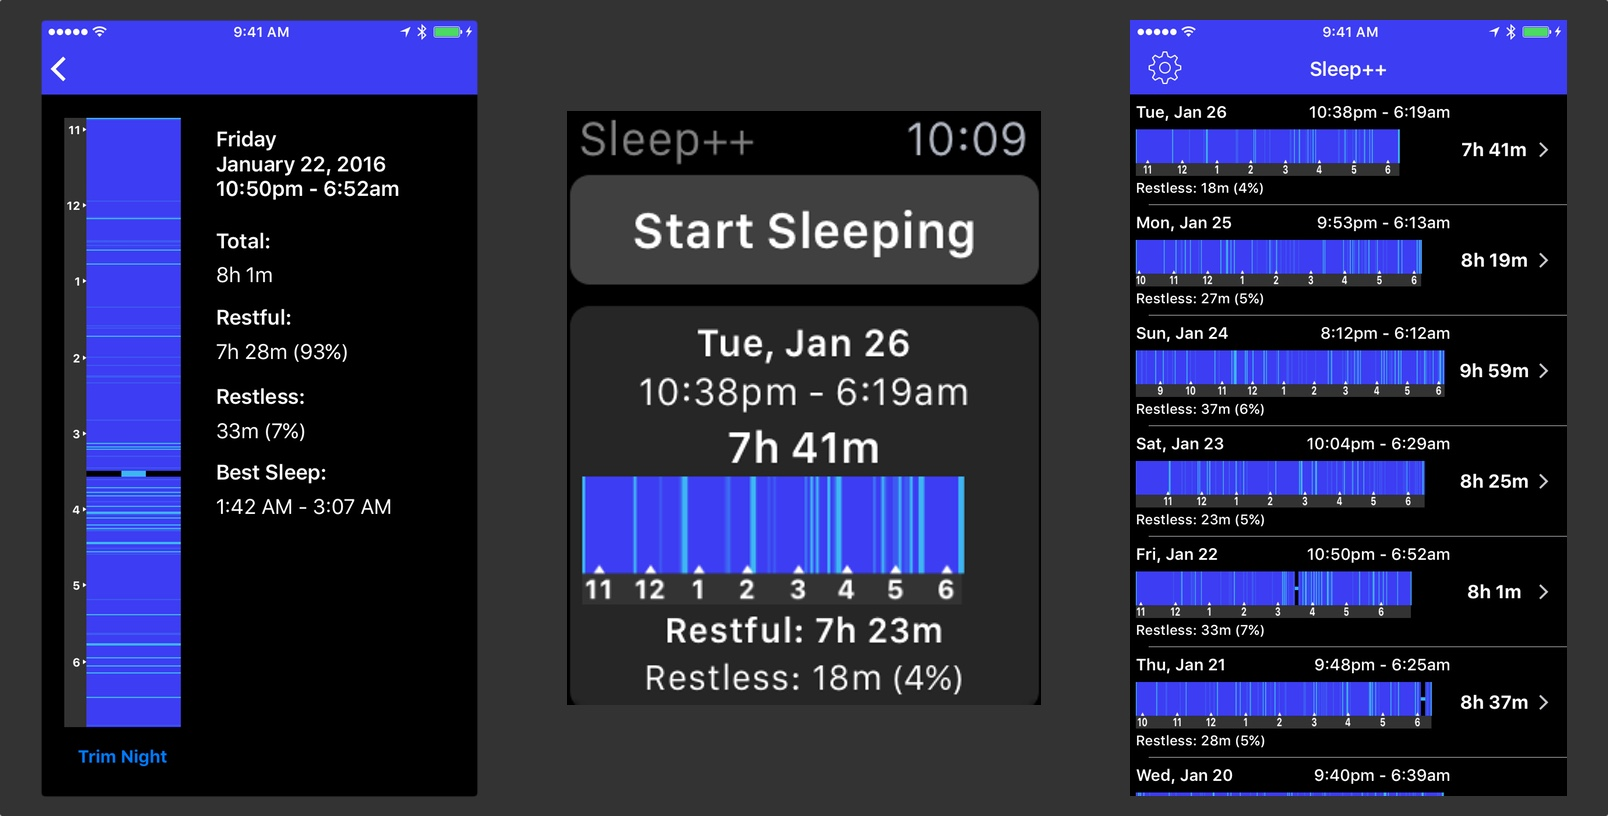 Sleep++ 2.0 has a brand new algorithm for better sleep tracking on Apple Watch